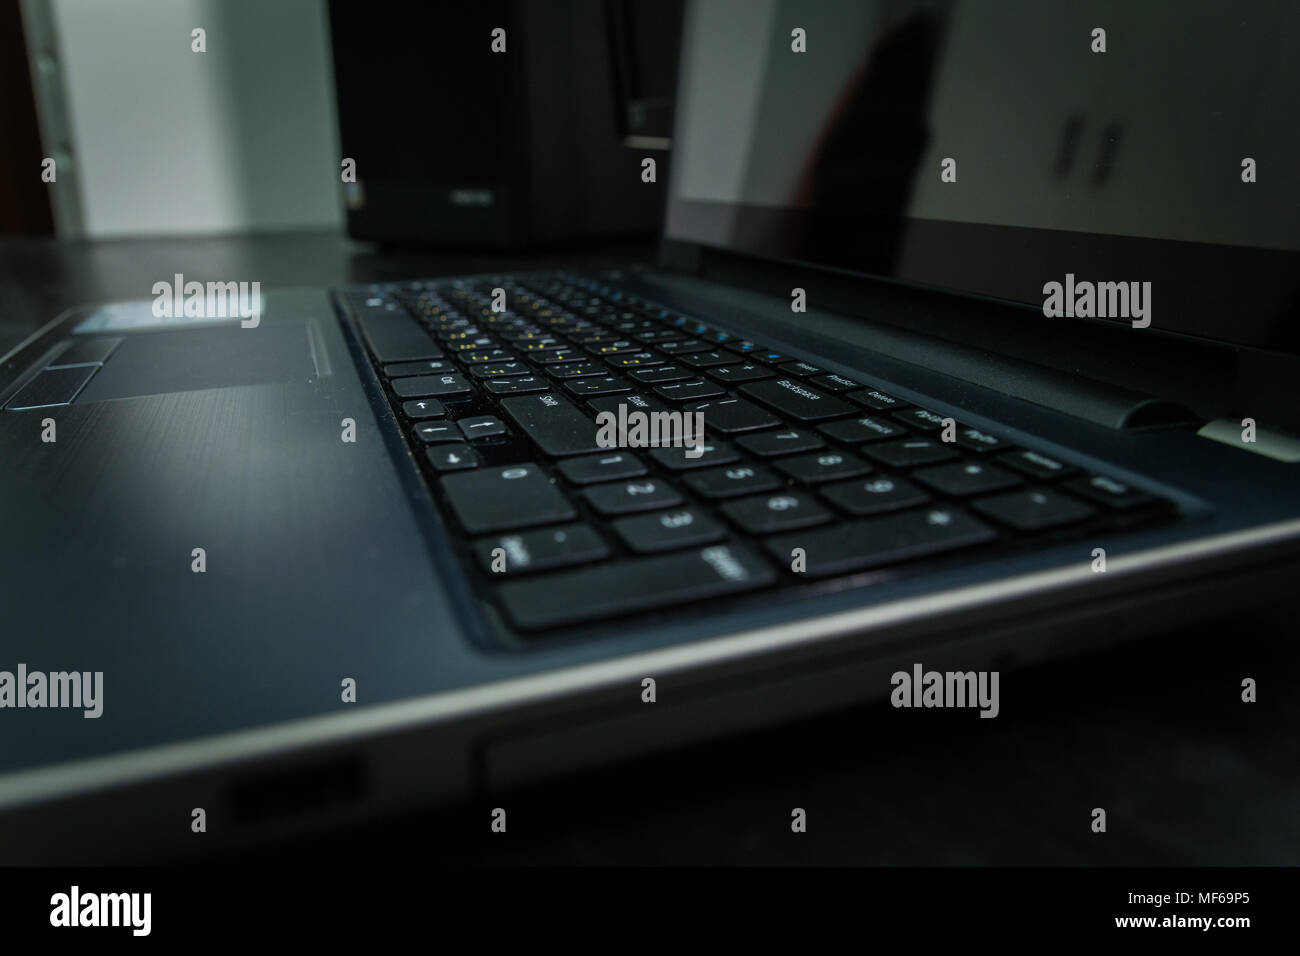 Keyboard with letters in Hebrew and English - Laptop keyboard - Dark atmosphere - Stock Image